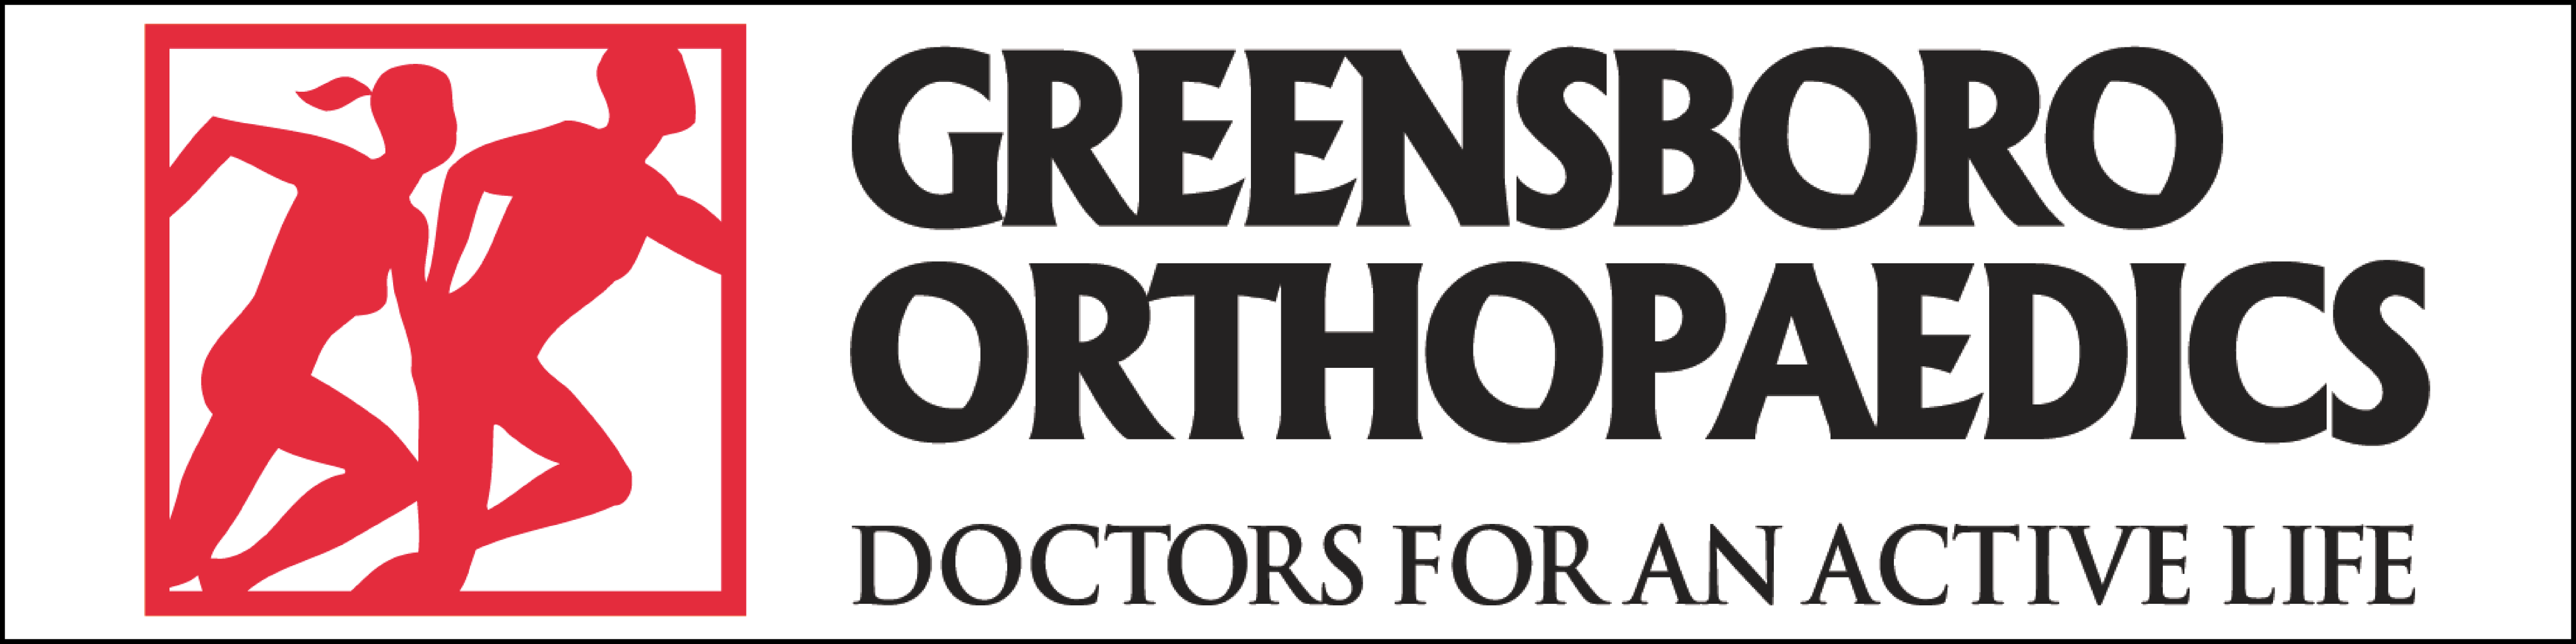 Greensboro-Orthopaedics.png